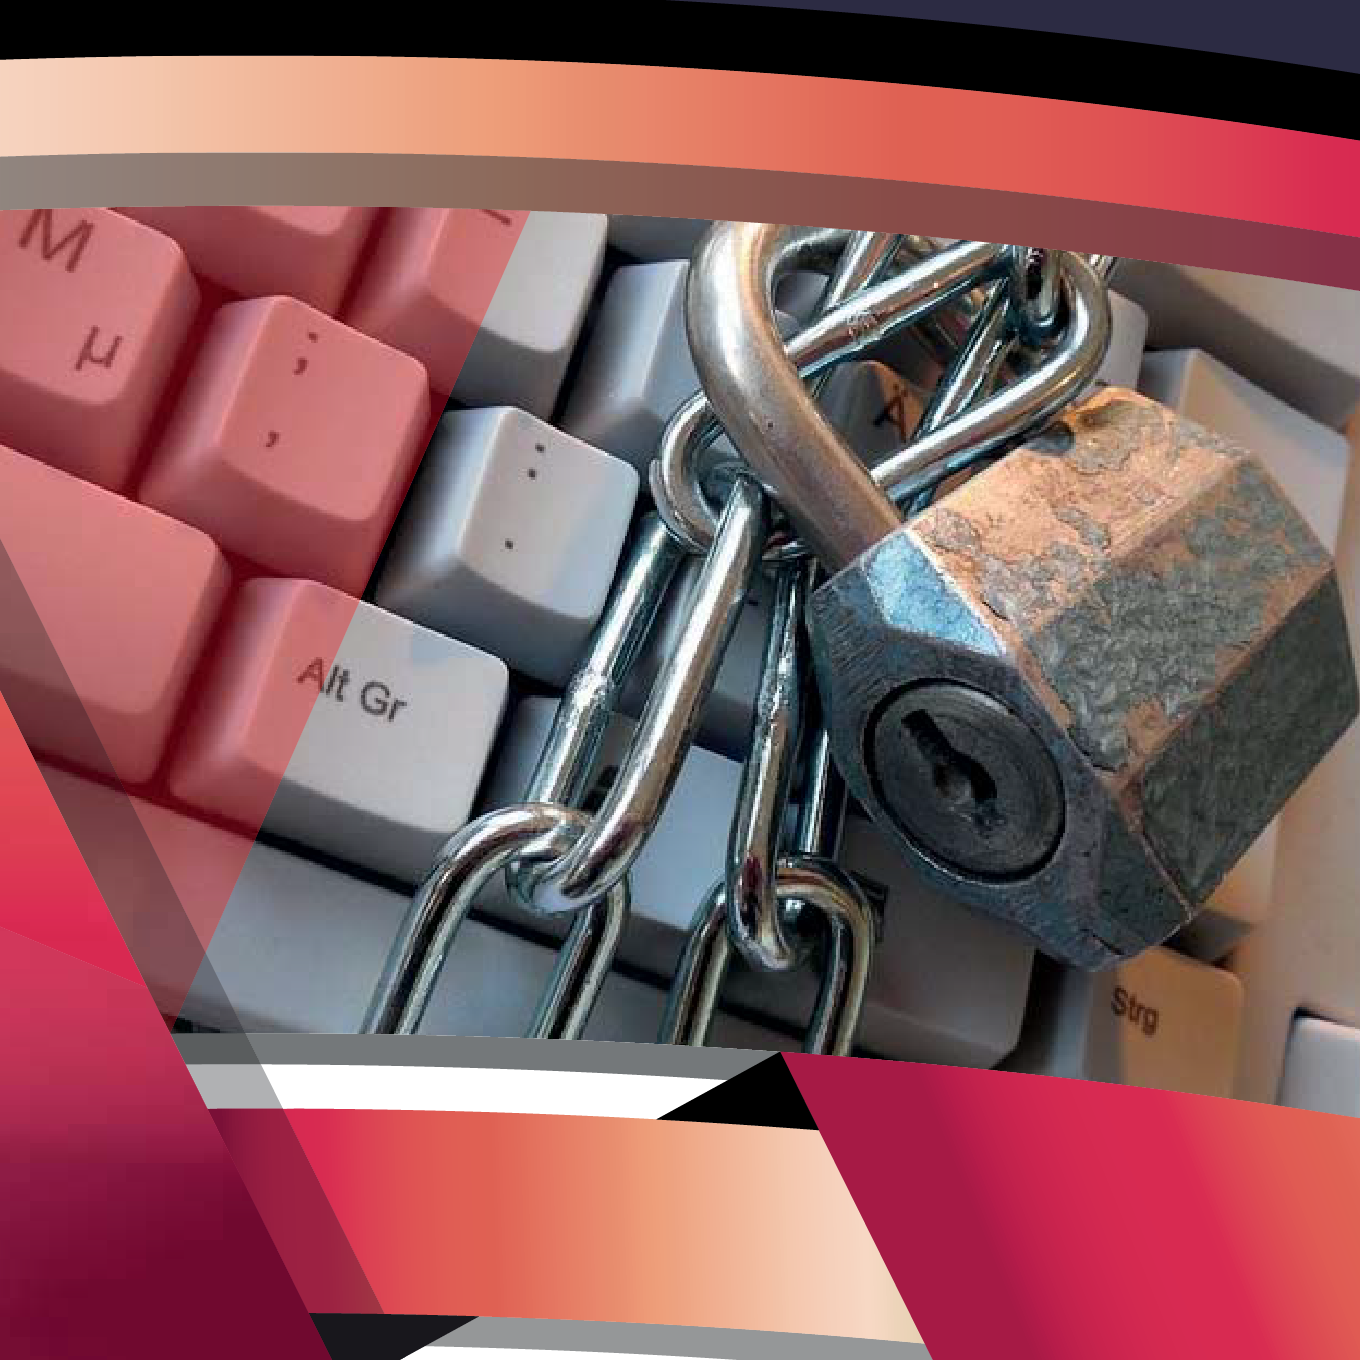 DATA PROTECTION - Information Systems and Security Measures